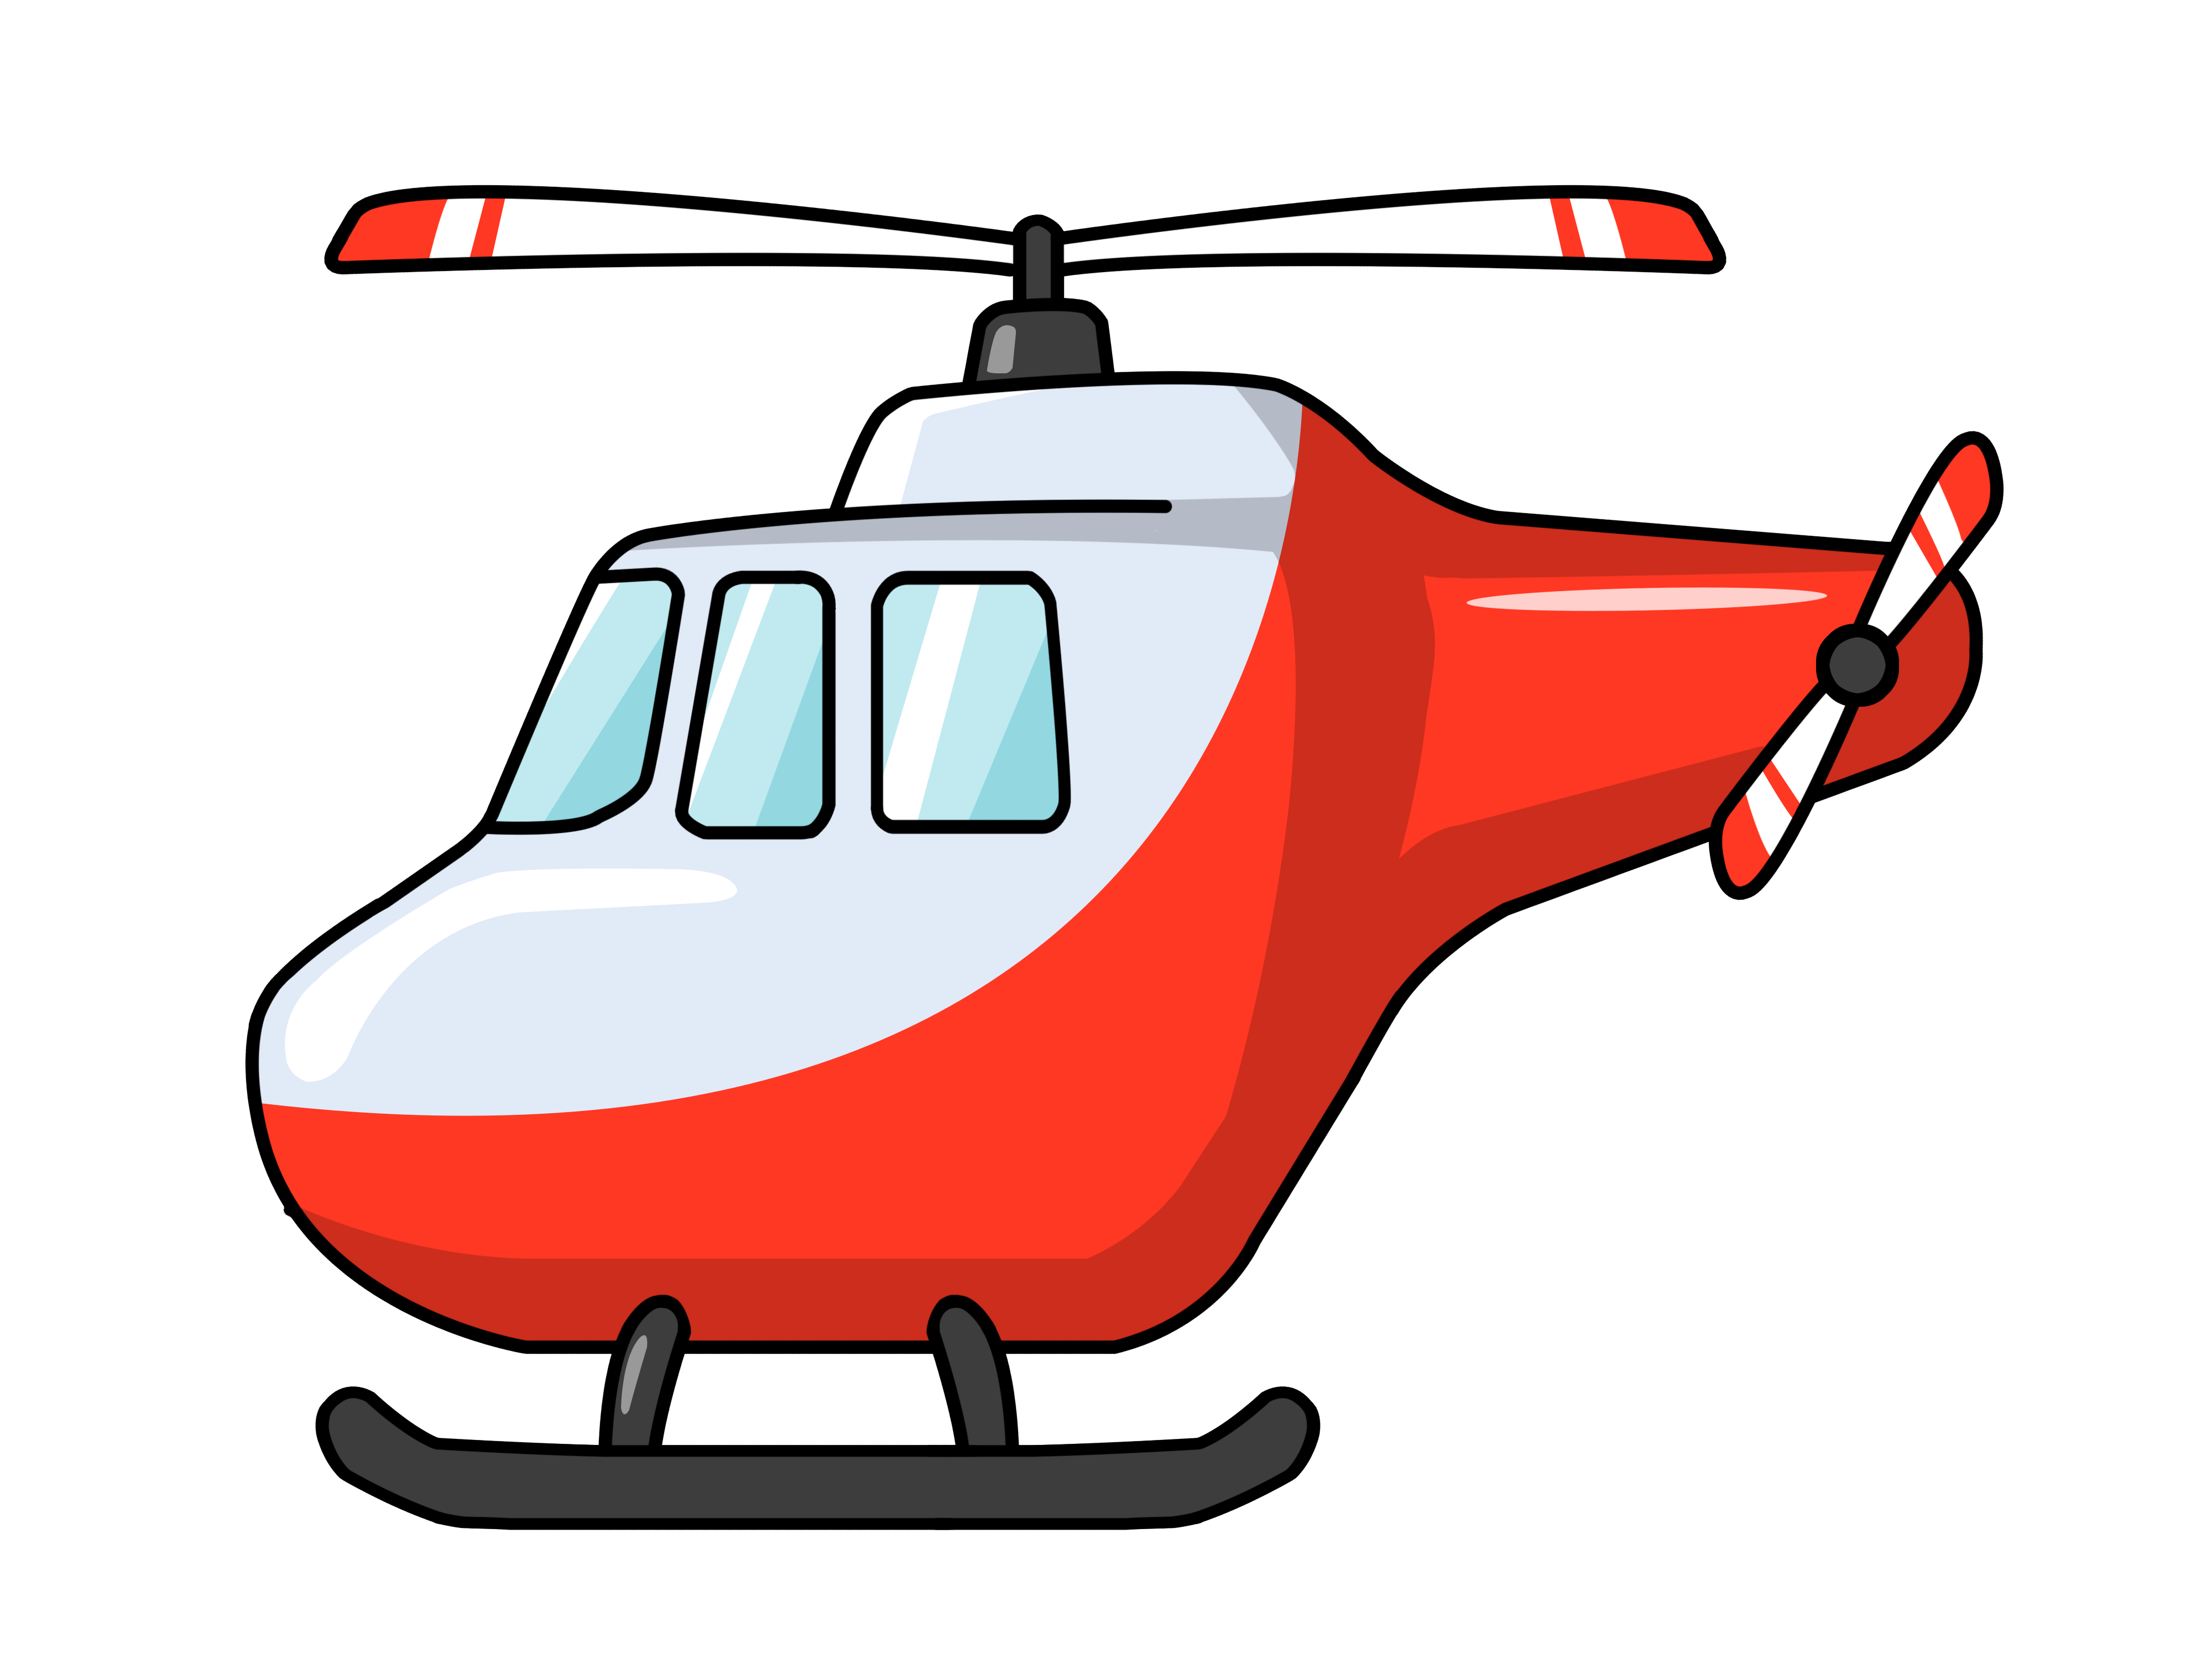 Helicopter clipart clip art. Free funny cliparts download